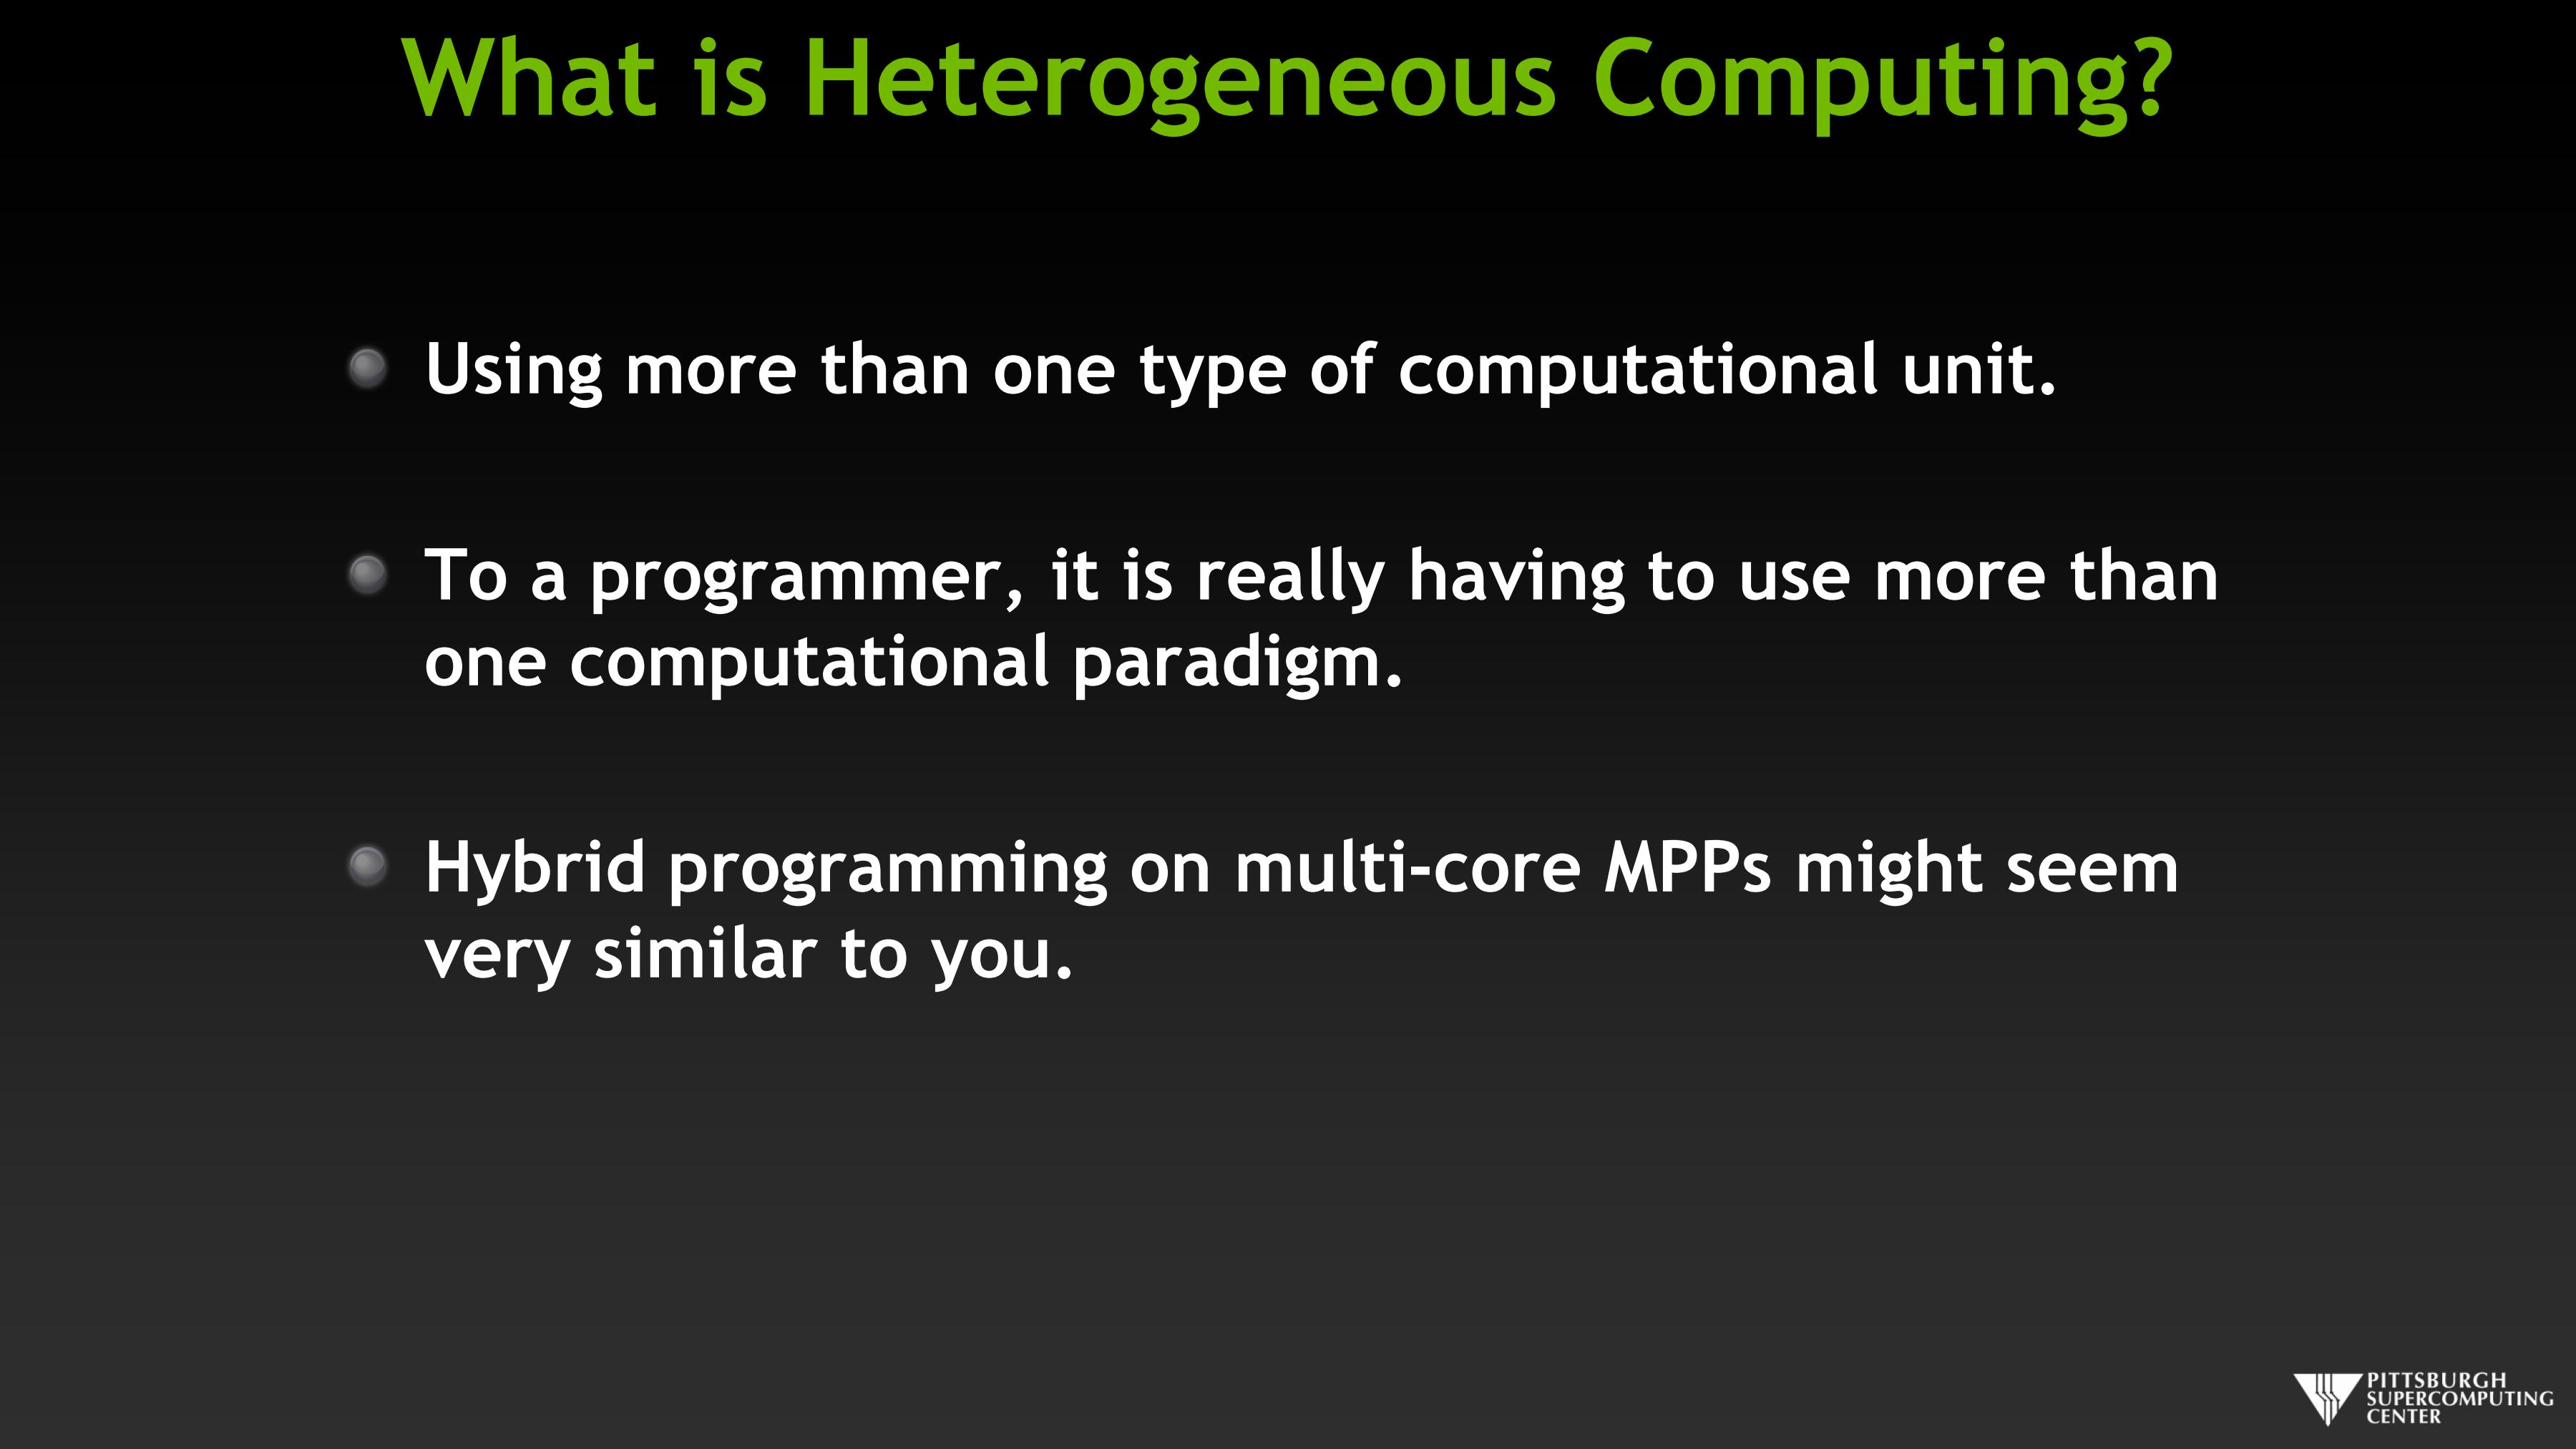 WHat is Heterogeneous Computing?